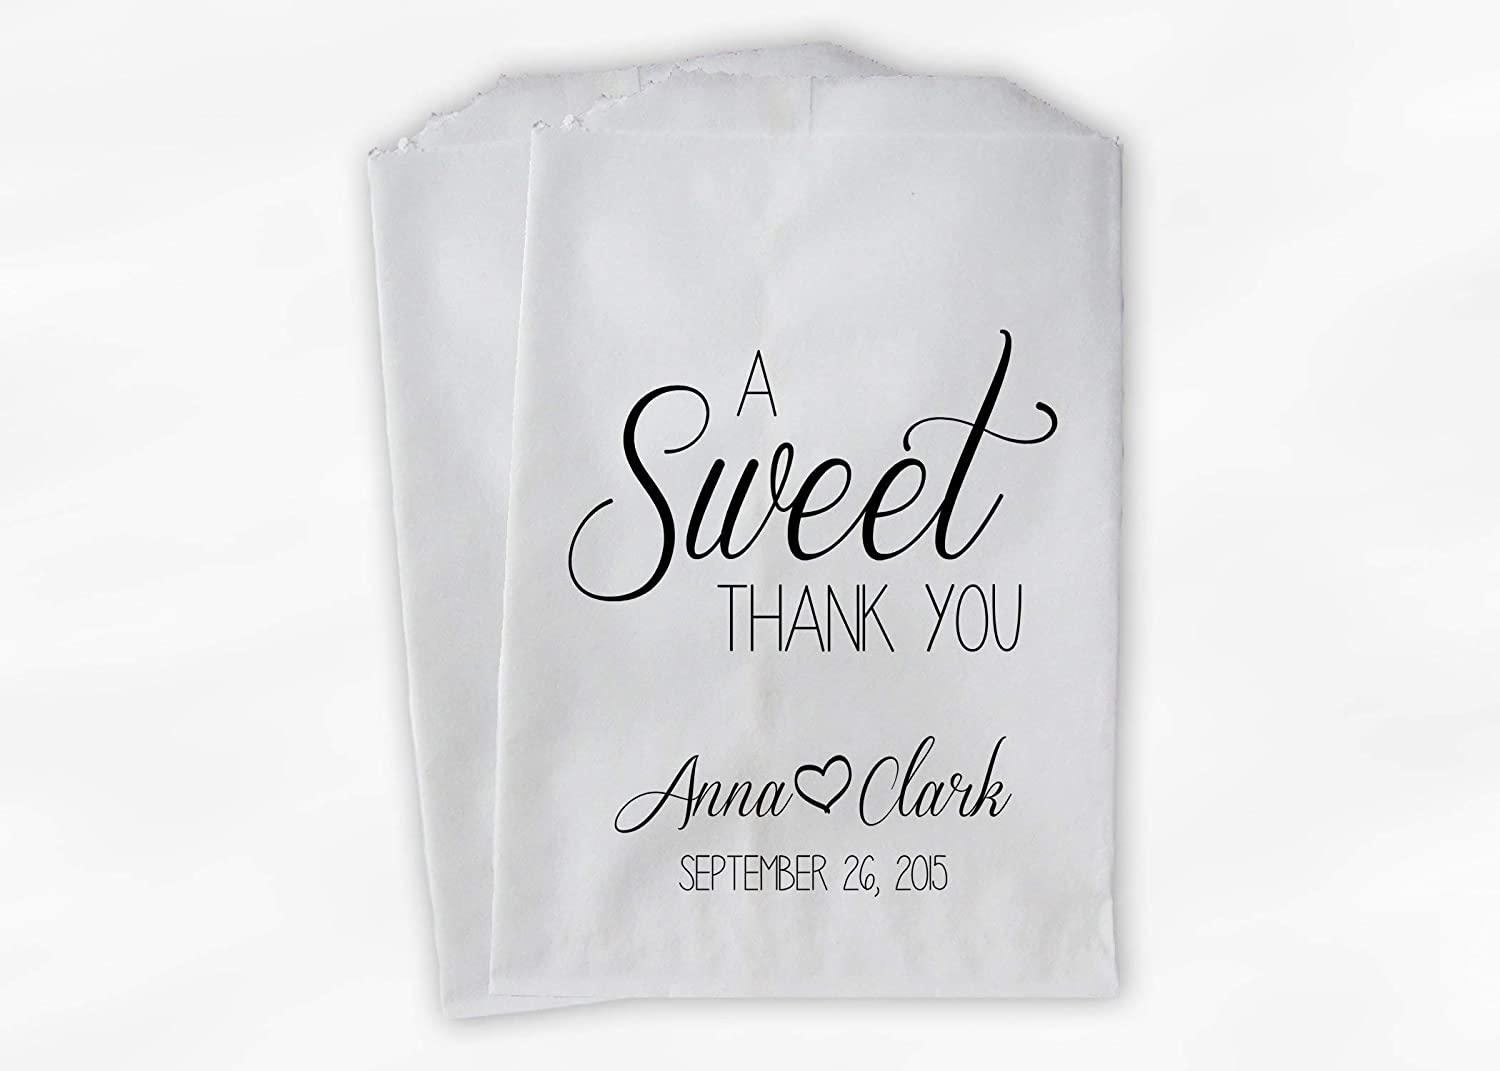 Admirable A Sweet Thank You Wedding Favor Bags For Candy Buffet In Black And White Personalized Set Of 25 Paper Bags 0153 Download Free Architecture Designs Intelgarnamadebymaigaardcom